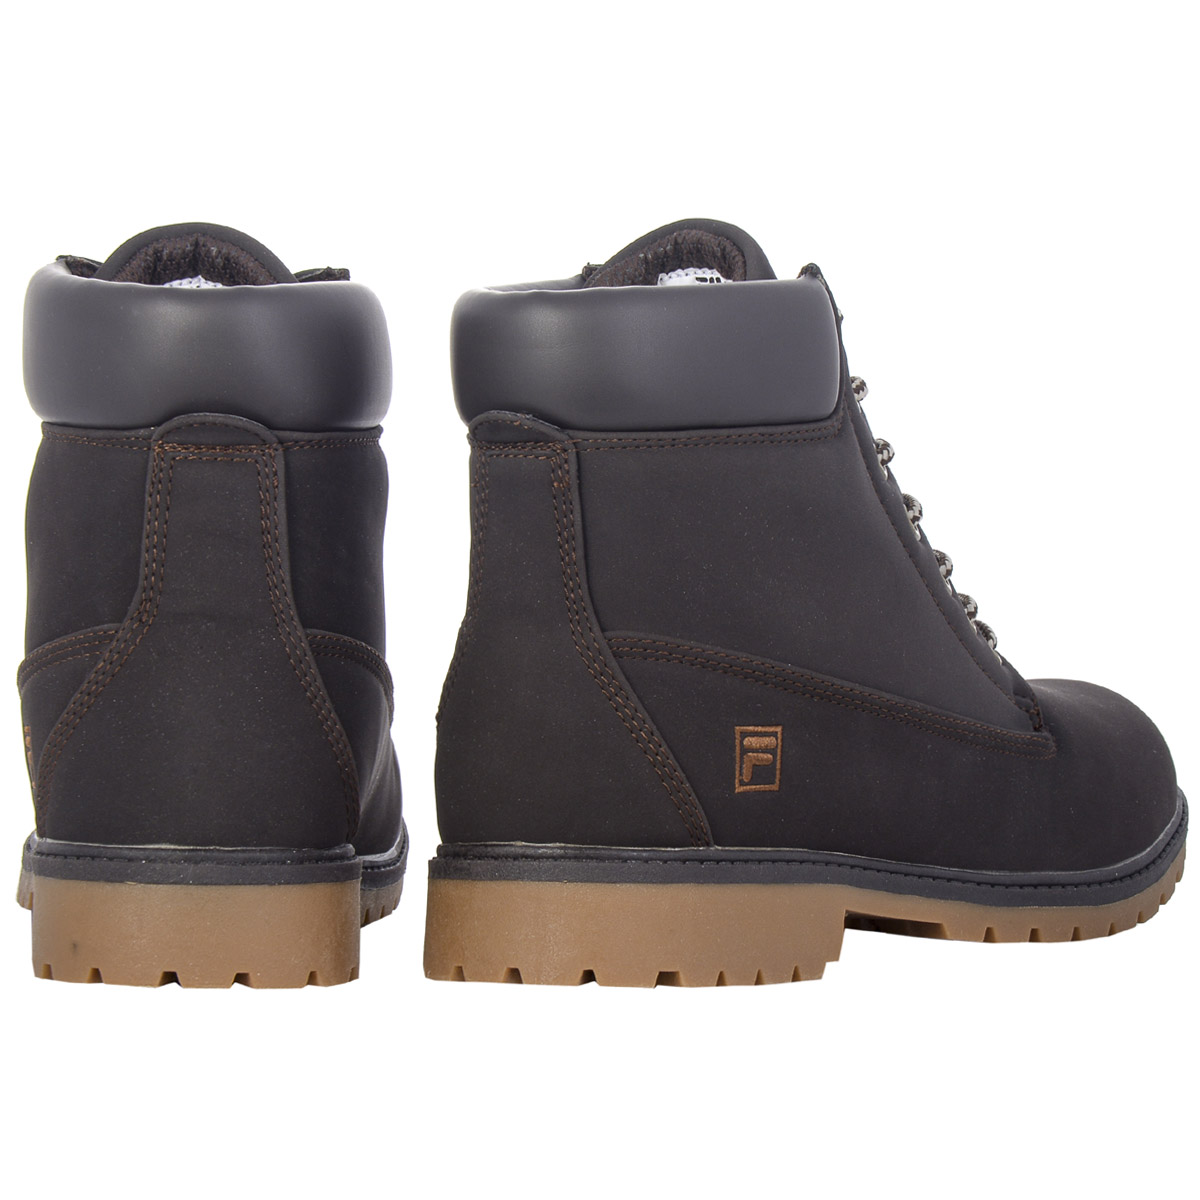 fila herren boots maverick is mid braun winter stiefel. Black Bedroom Furniture Sets. Home Design Ideas